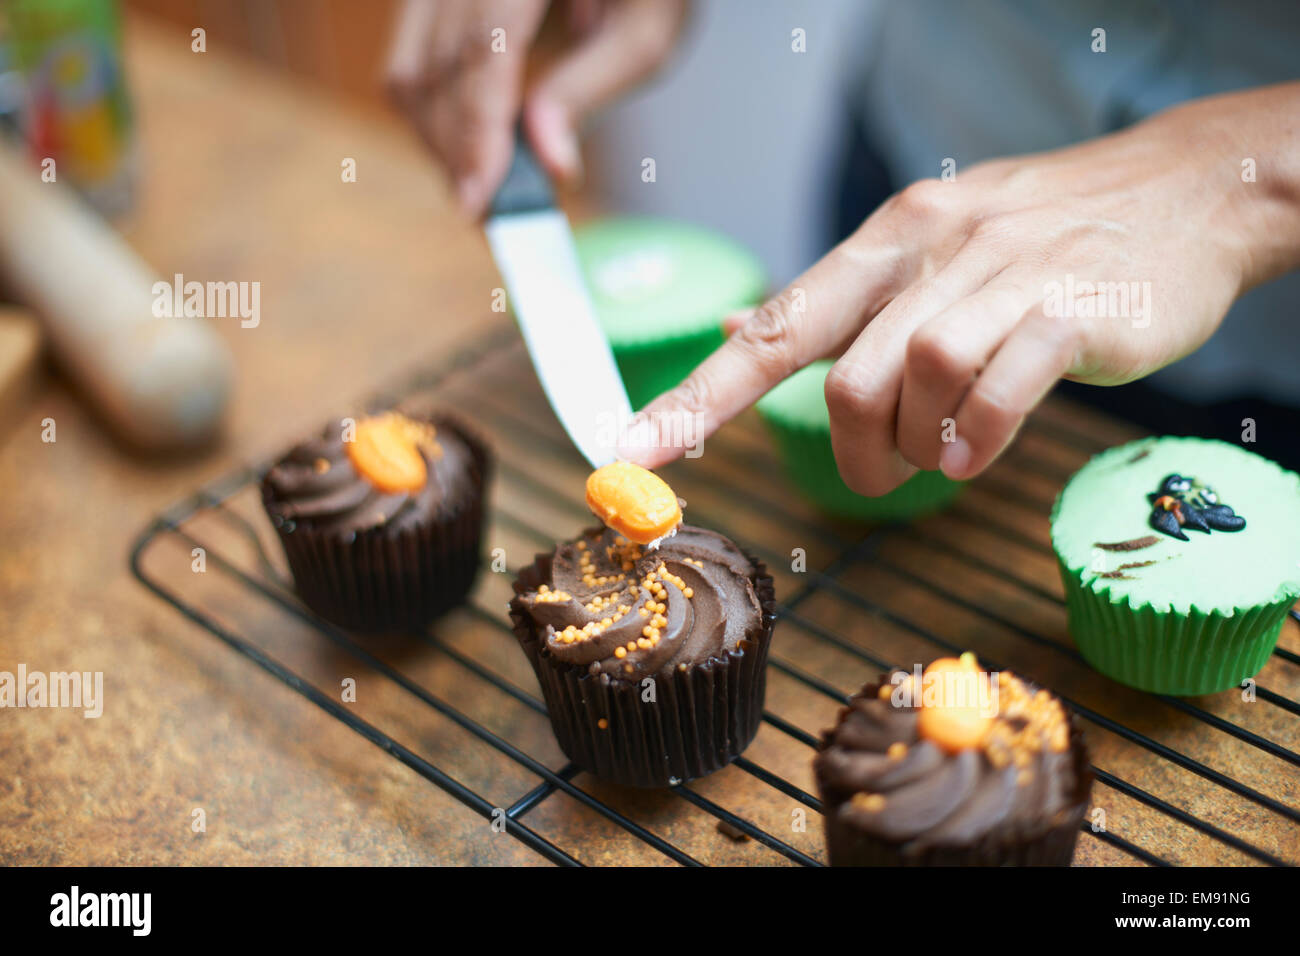 Womans hands icing cup cakes on cooling rack - Stock Image